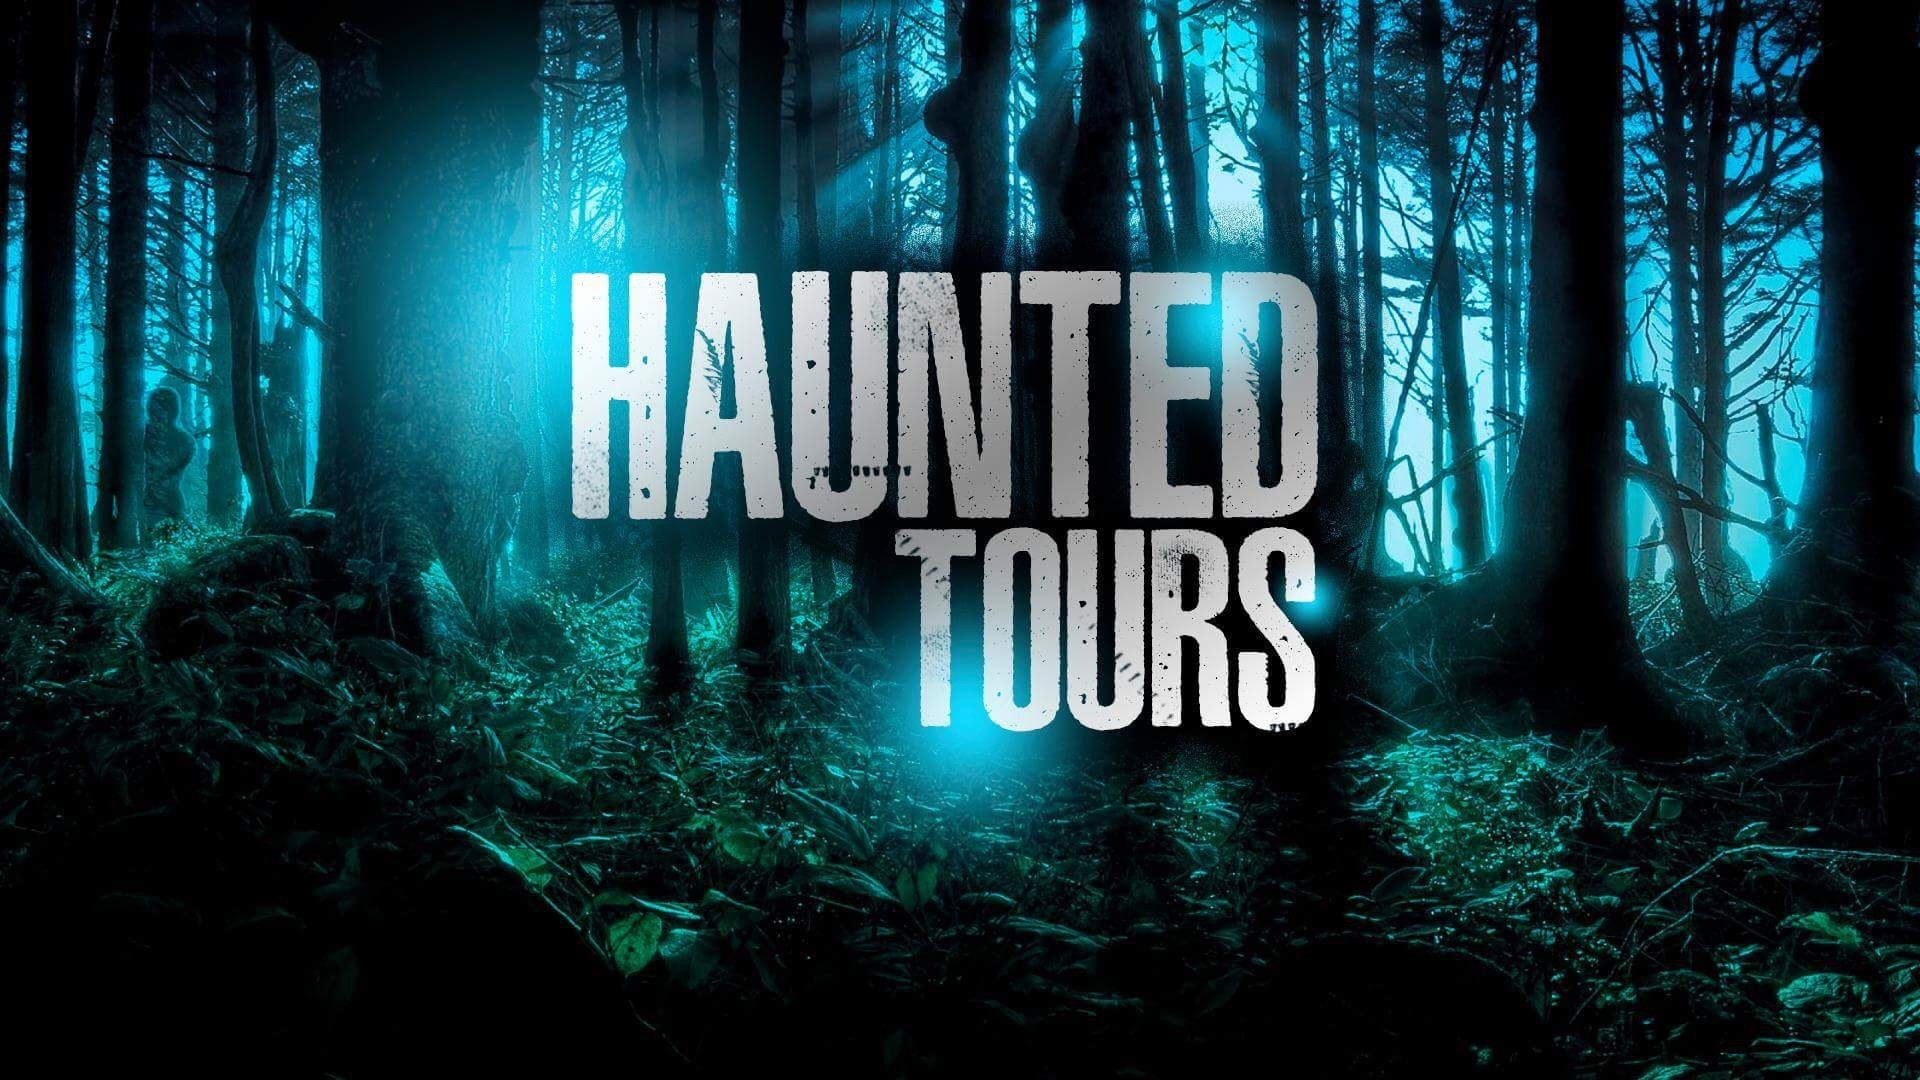 Haunted Tours Promises Extreme Paranormal Investigations - Dread Central